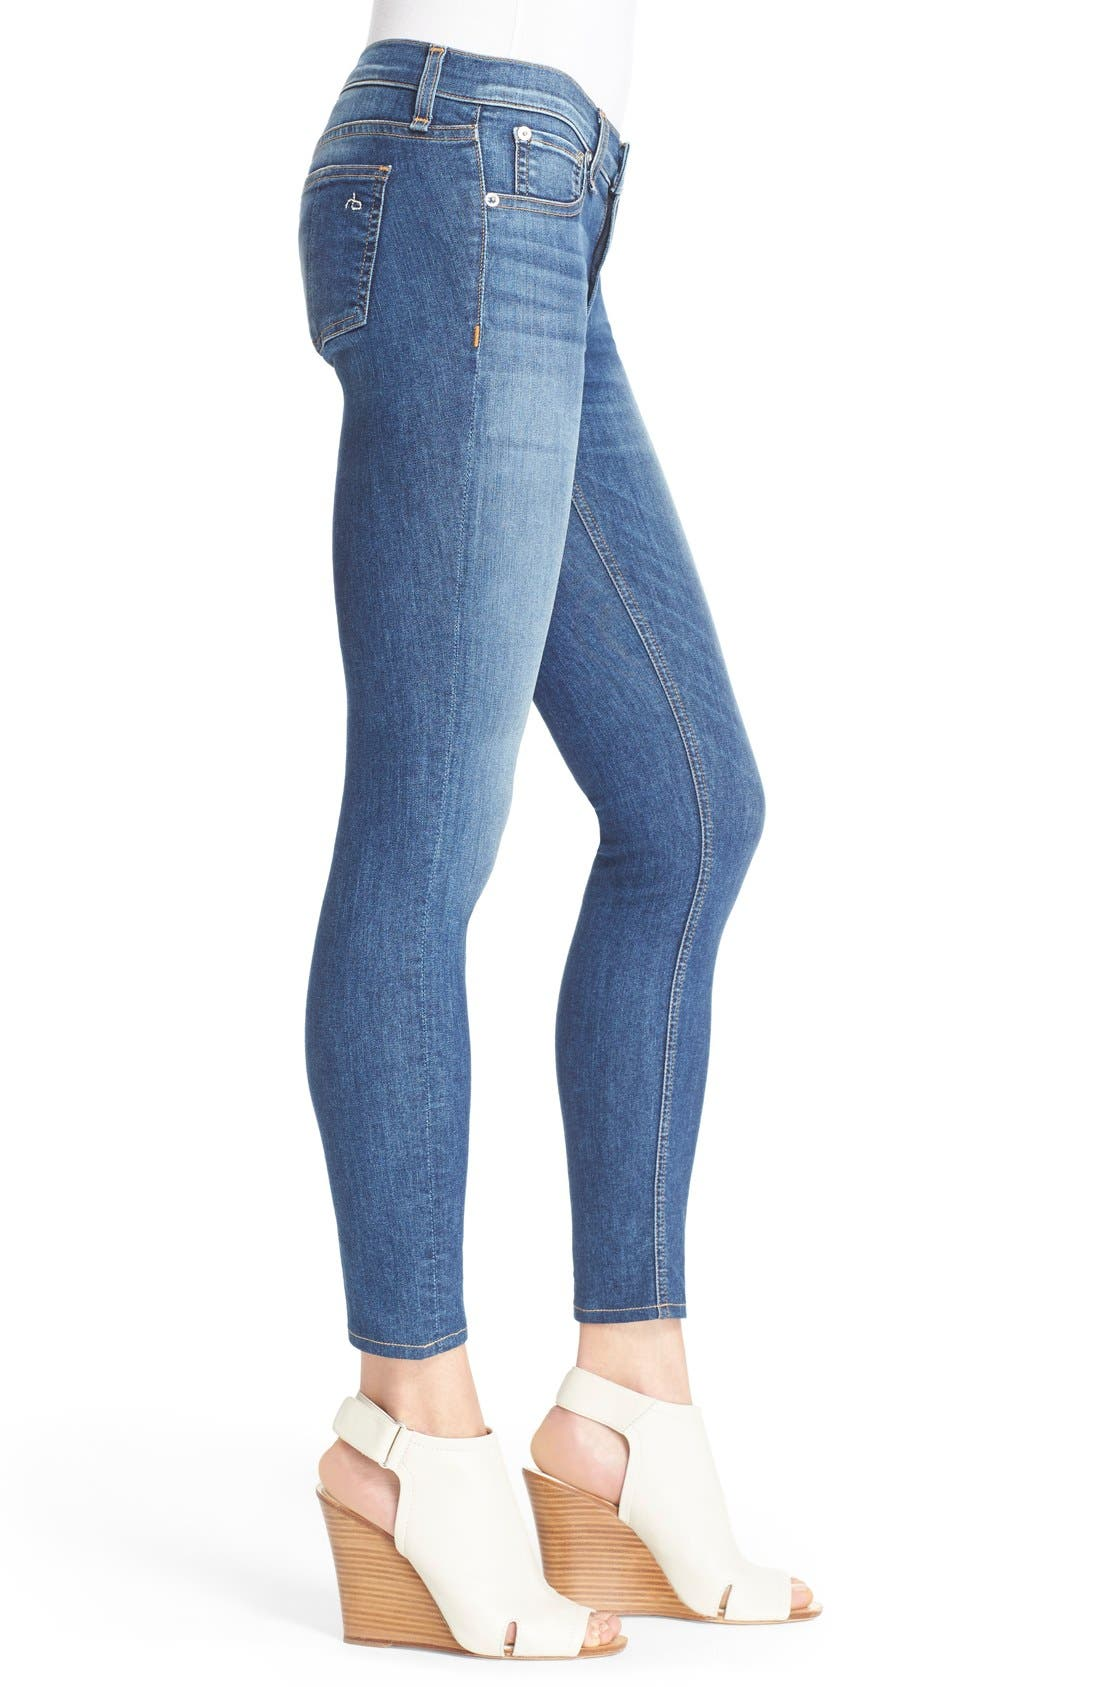 RAG & BONE, Capri Crop Skinny Jeans, Alternate thumbnail 7, color, RAE